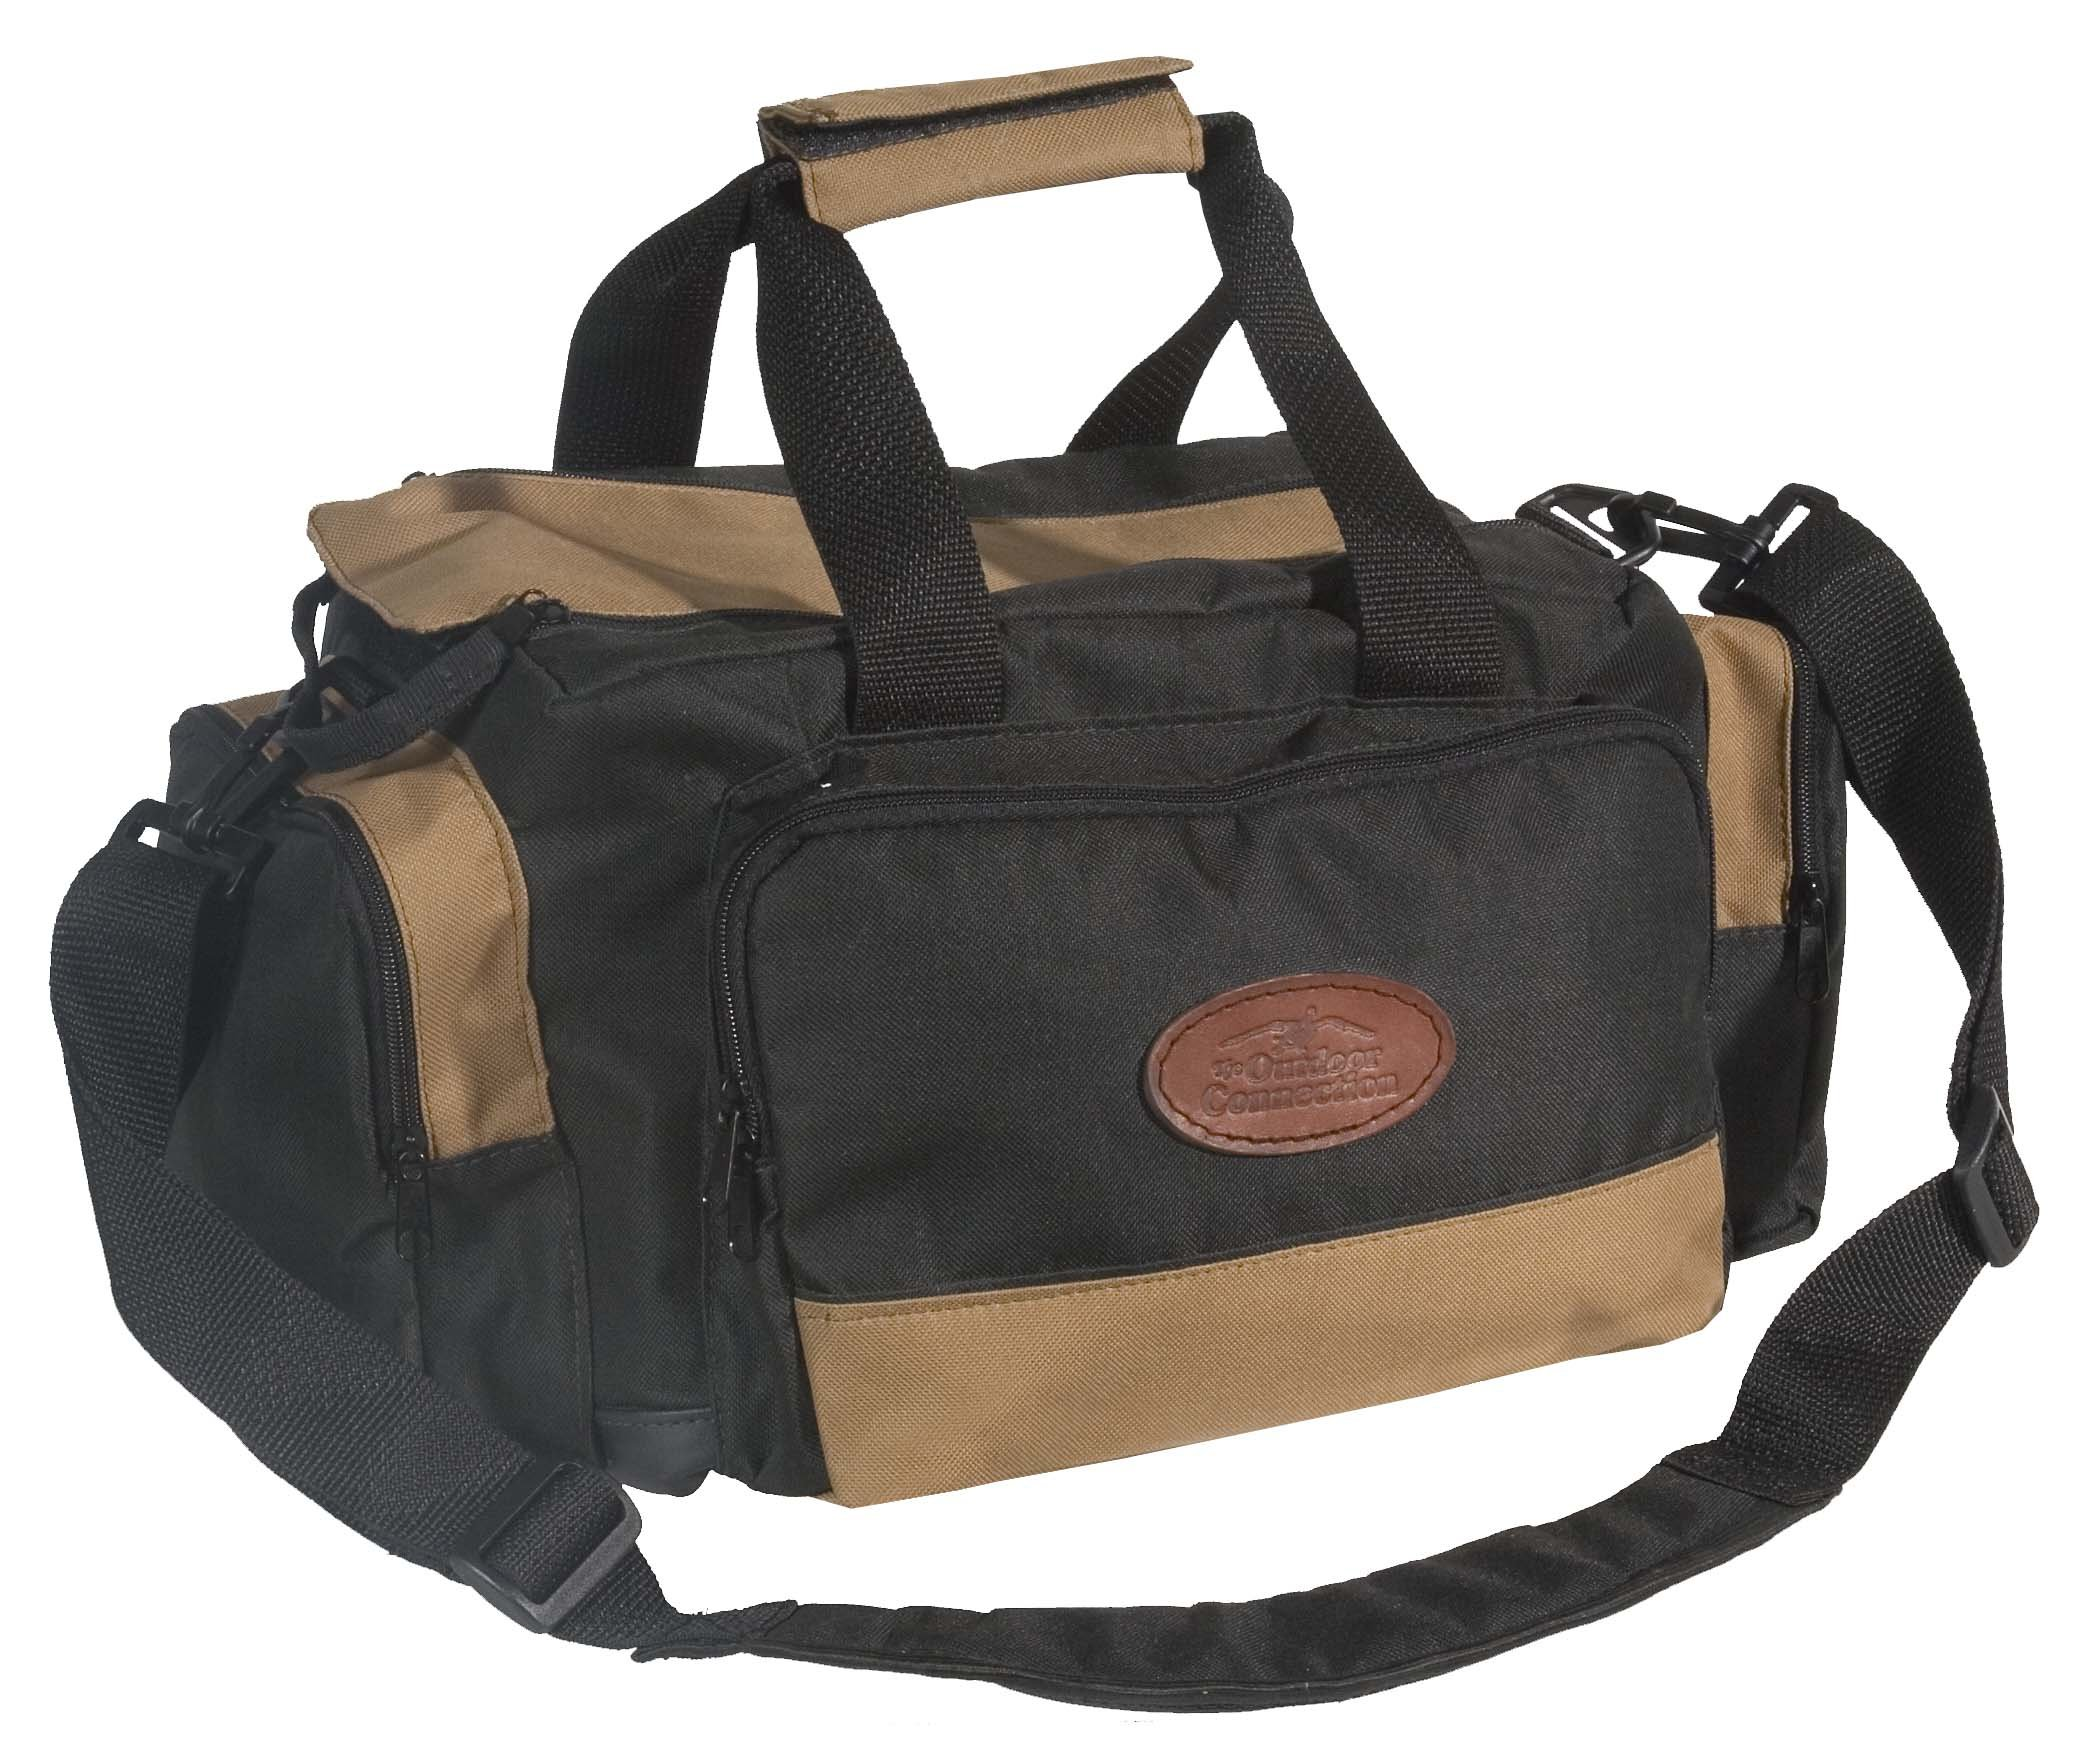 Outdoor Connection BGRNG1-28110 Deluxe Range Bag (Tan/Black)